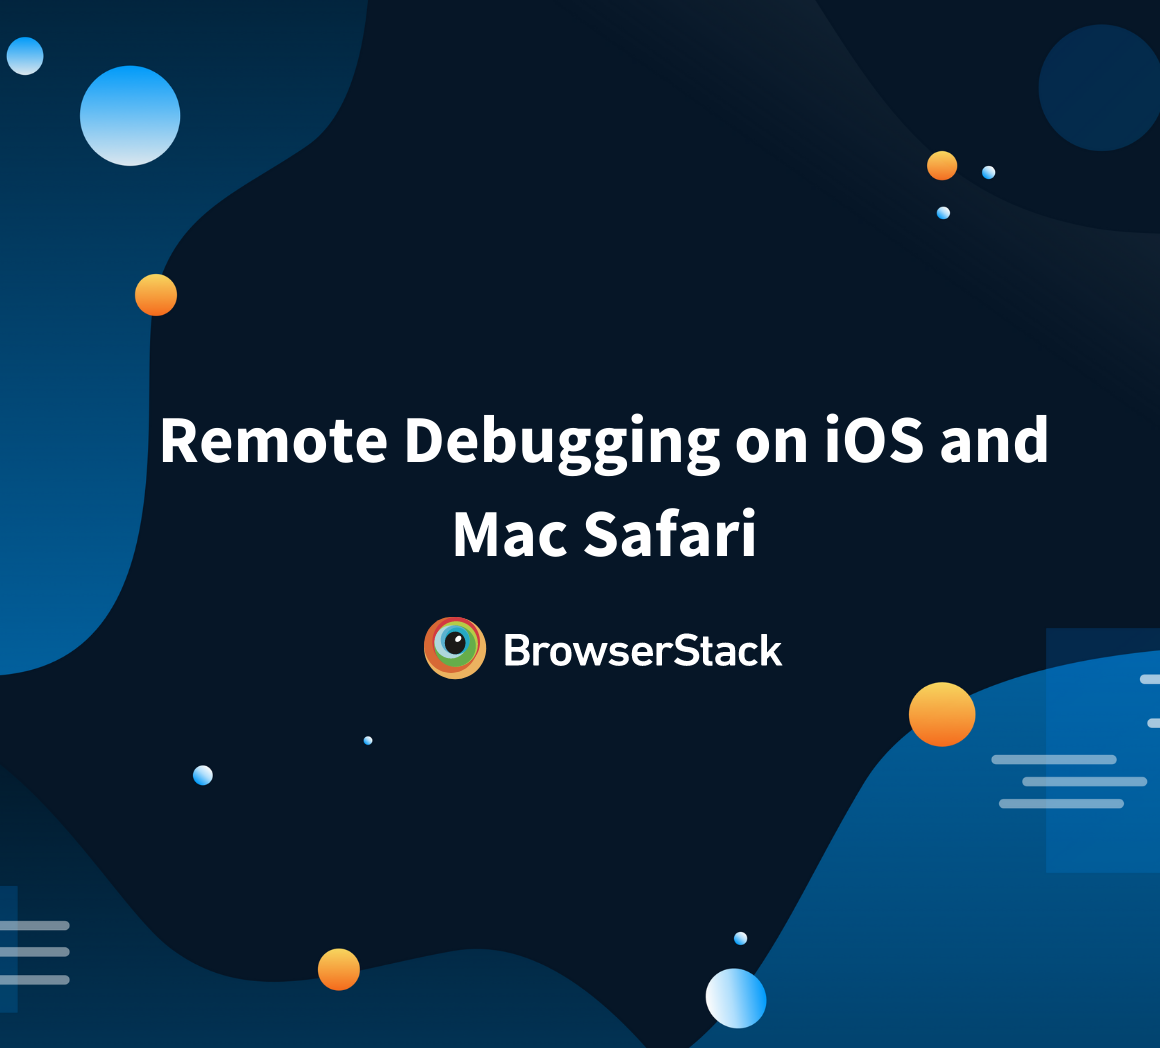 Remote Debugging on iOS and Mac Safari